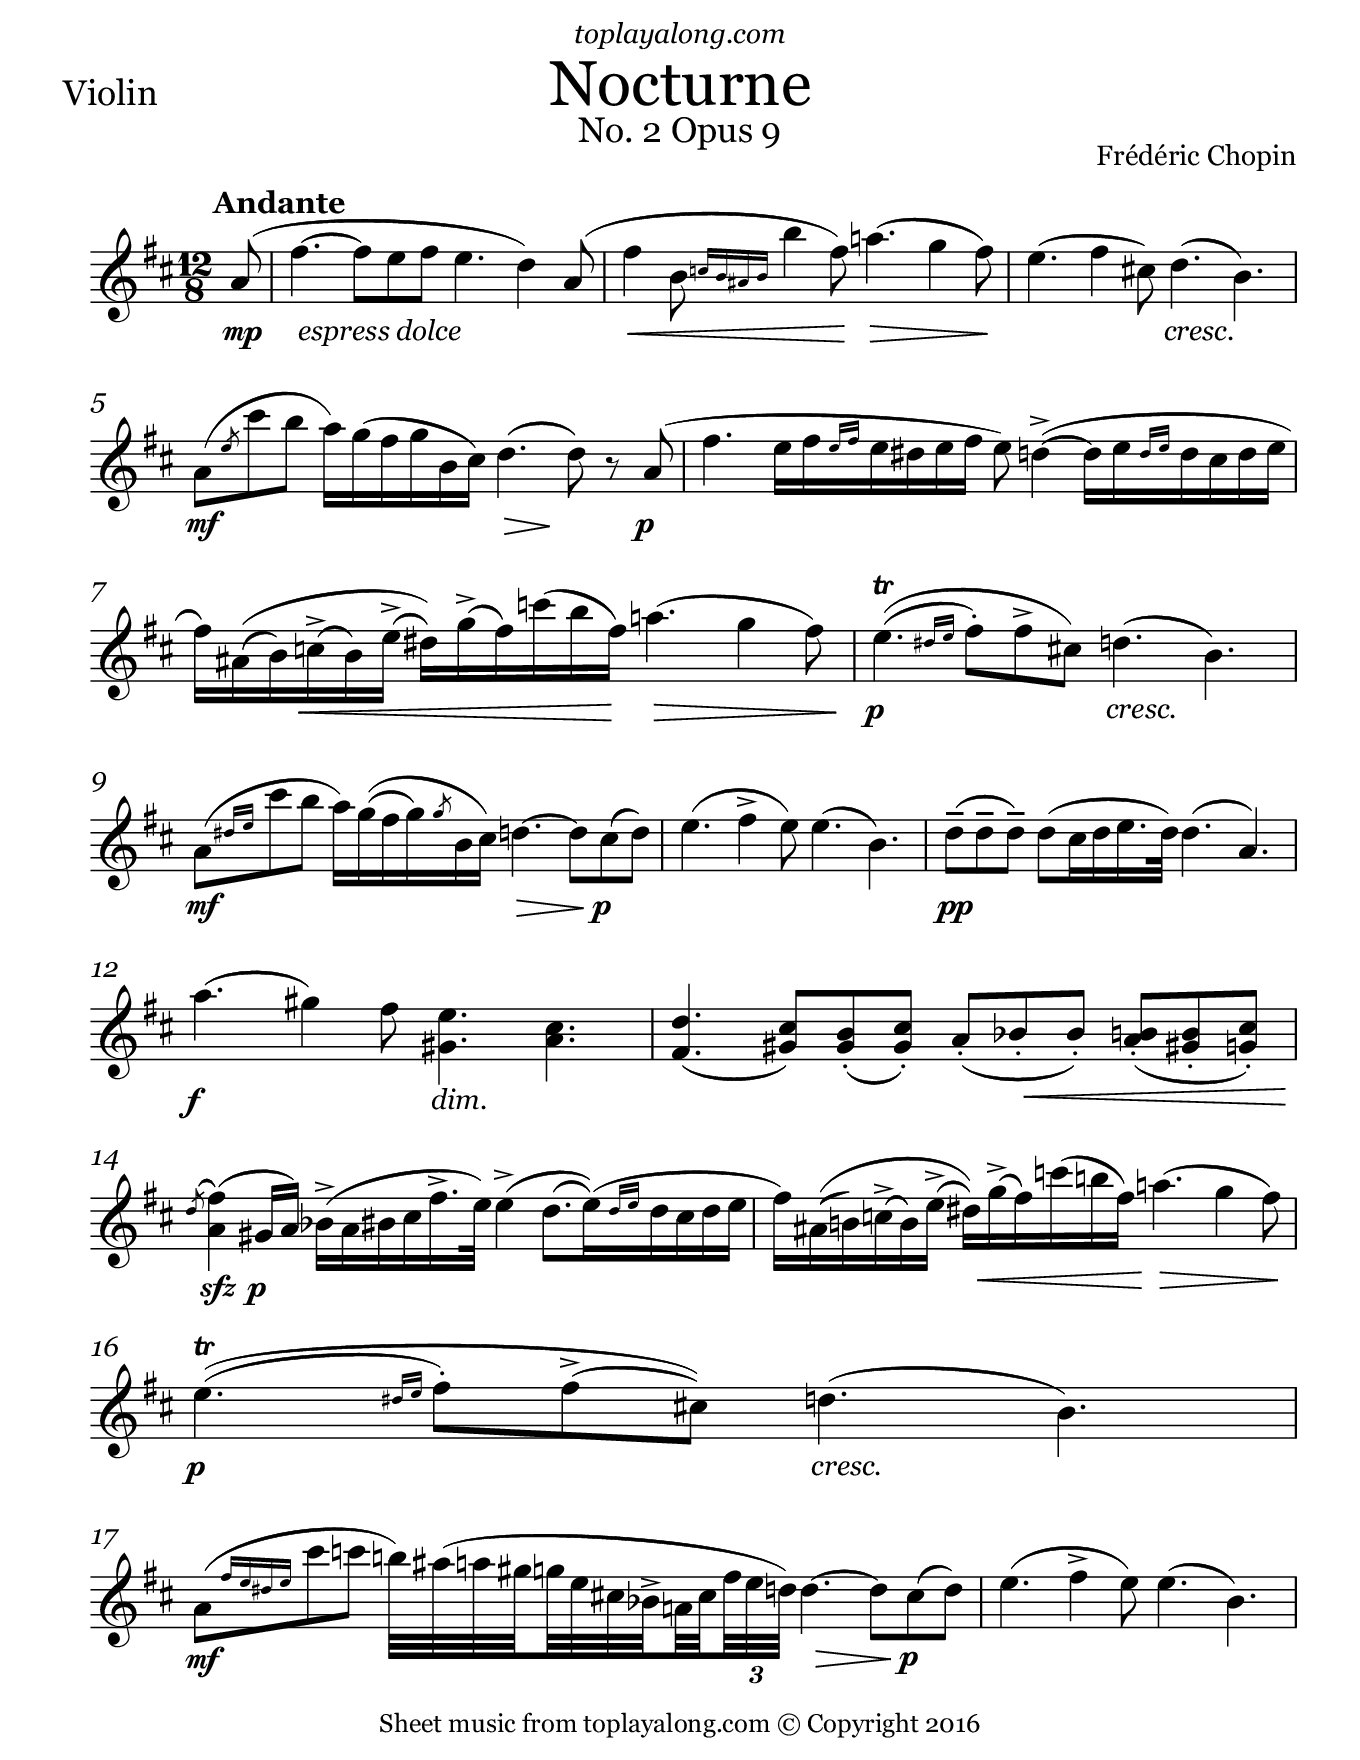 Nocturne No. 2 Op. 9 by Chopin. Sheet music for Violin, page 1.